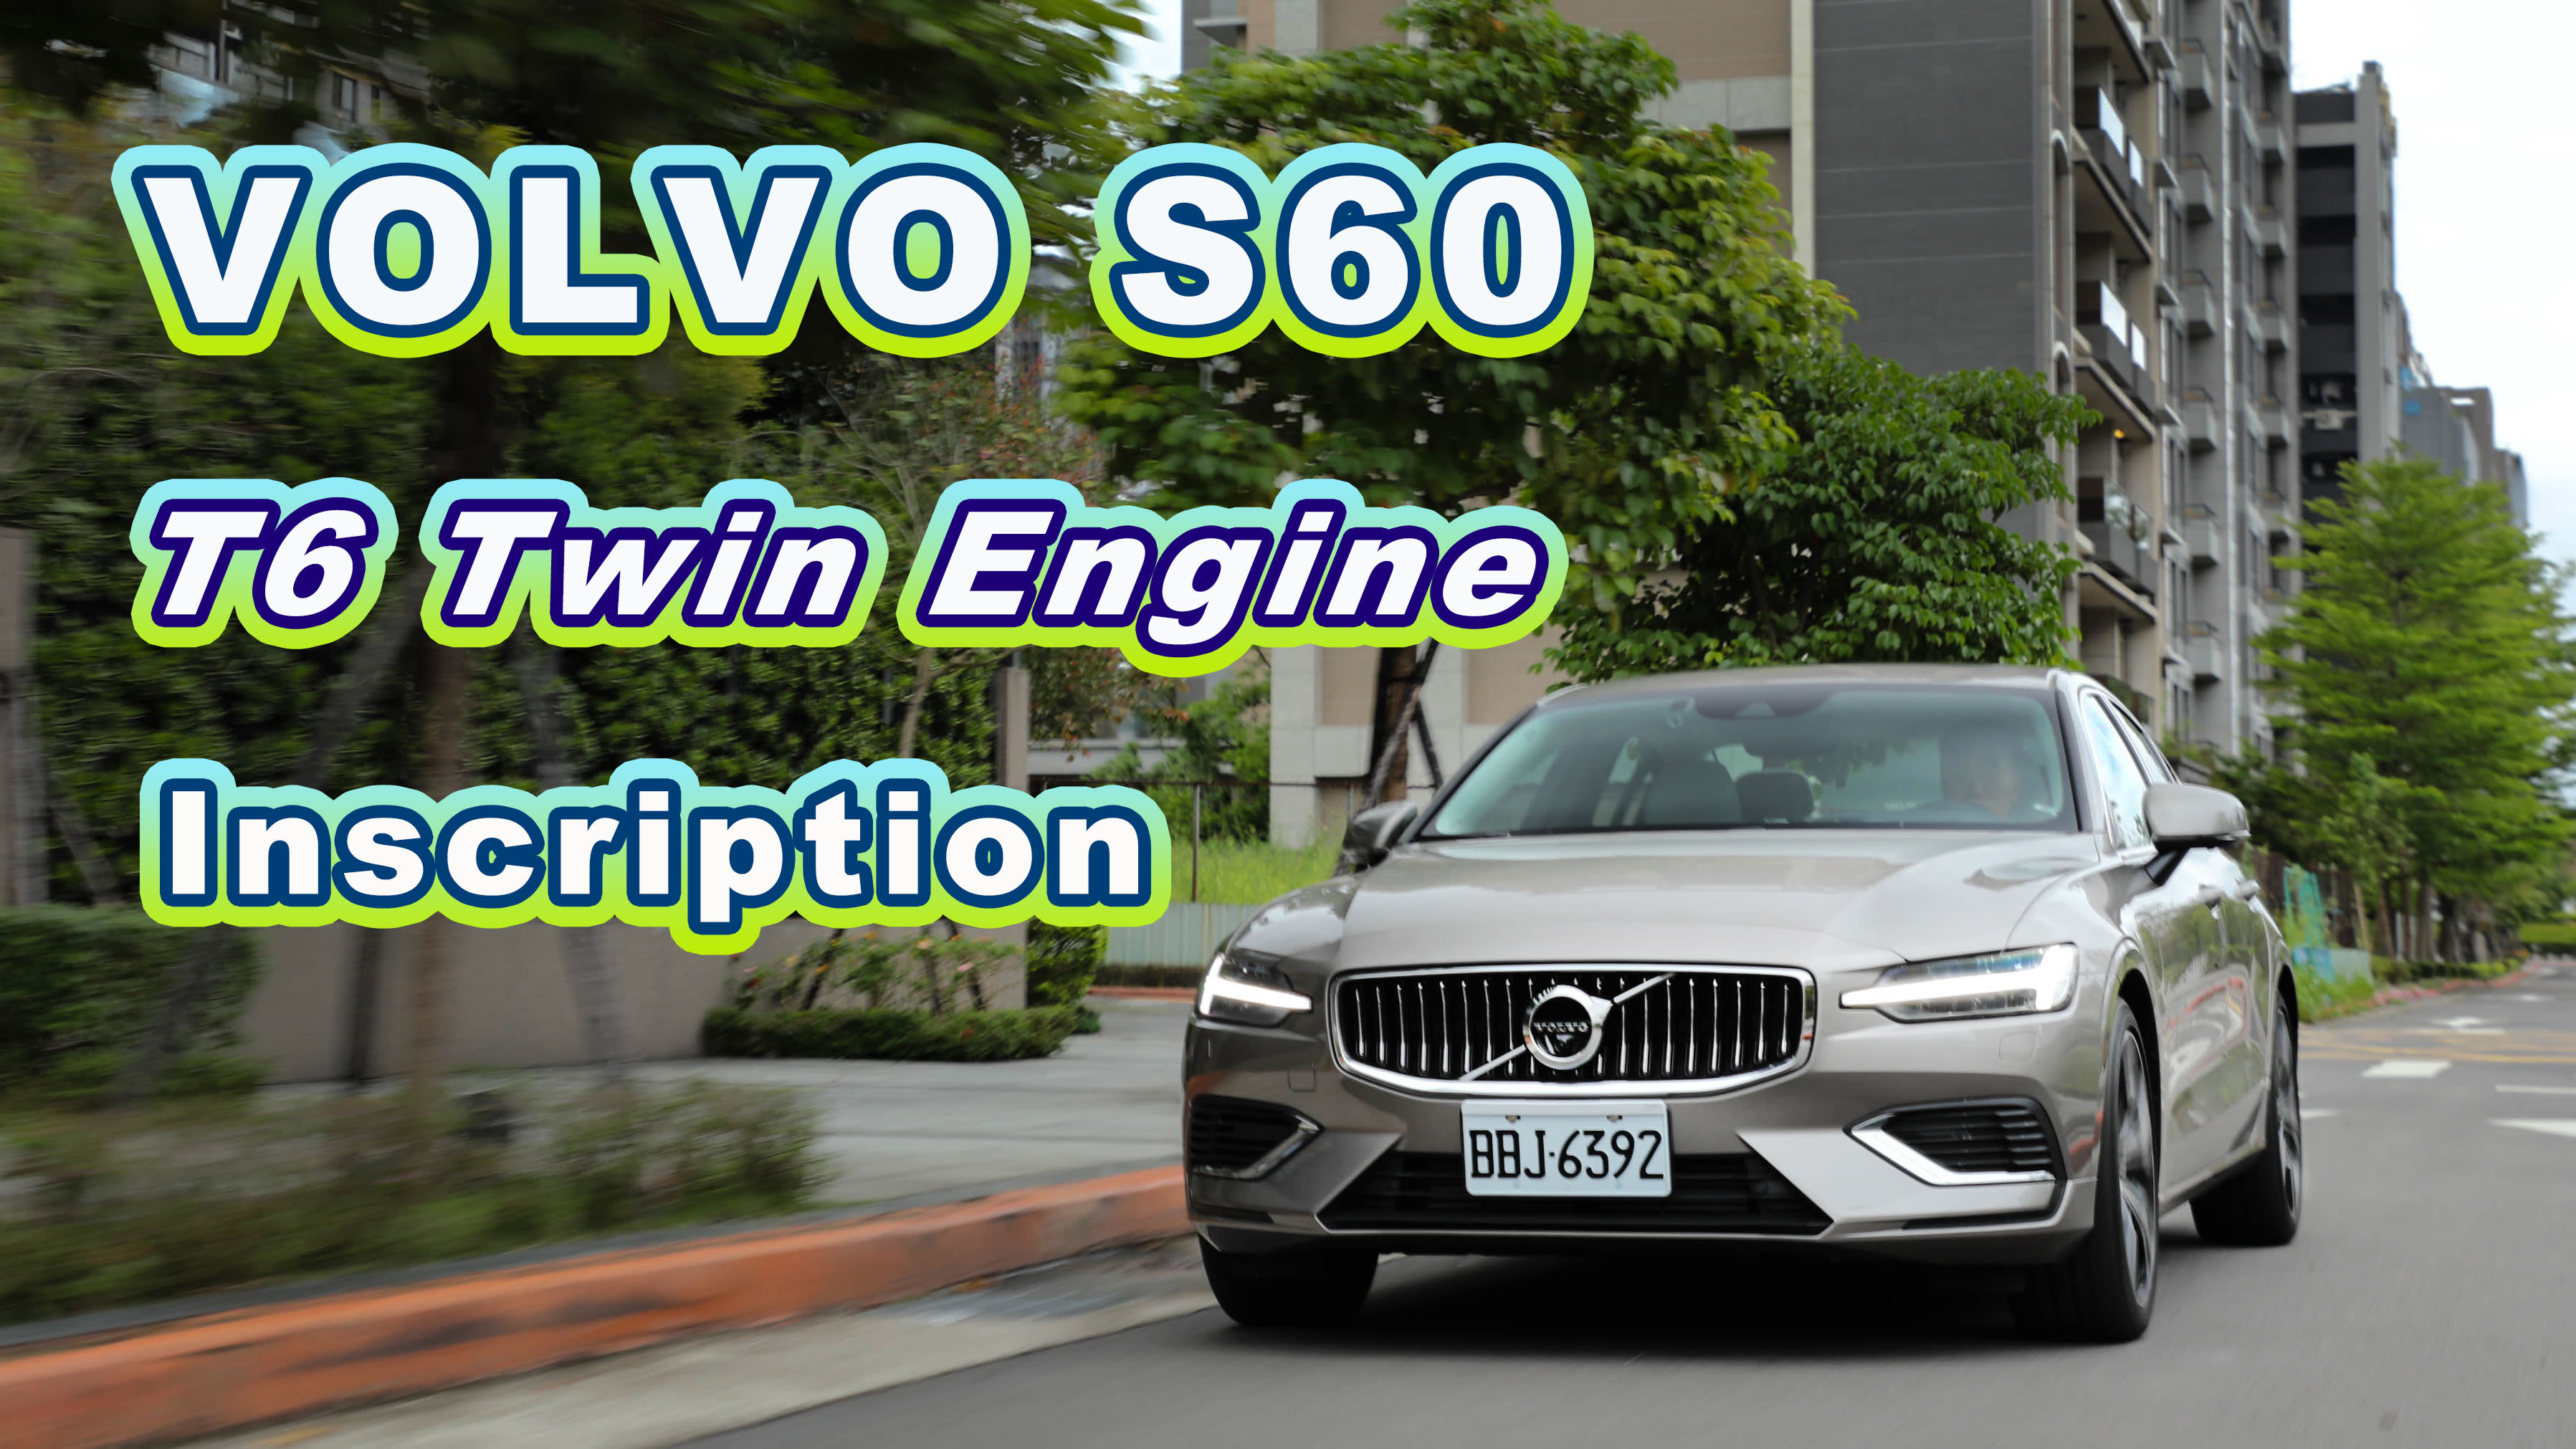 通勤無怨言!電能加持更舒適 VOLVO S60 T6 Twin Engine Inscription|新車試駕